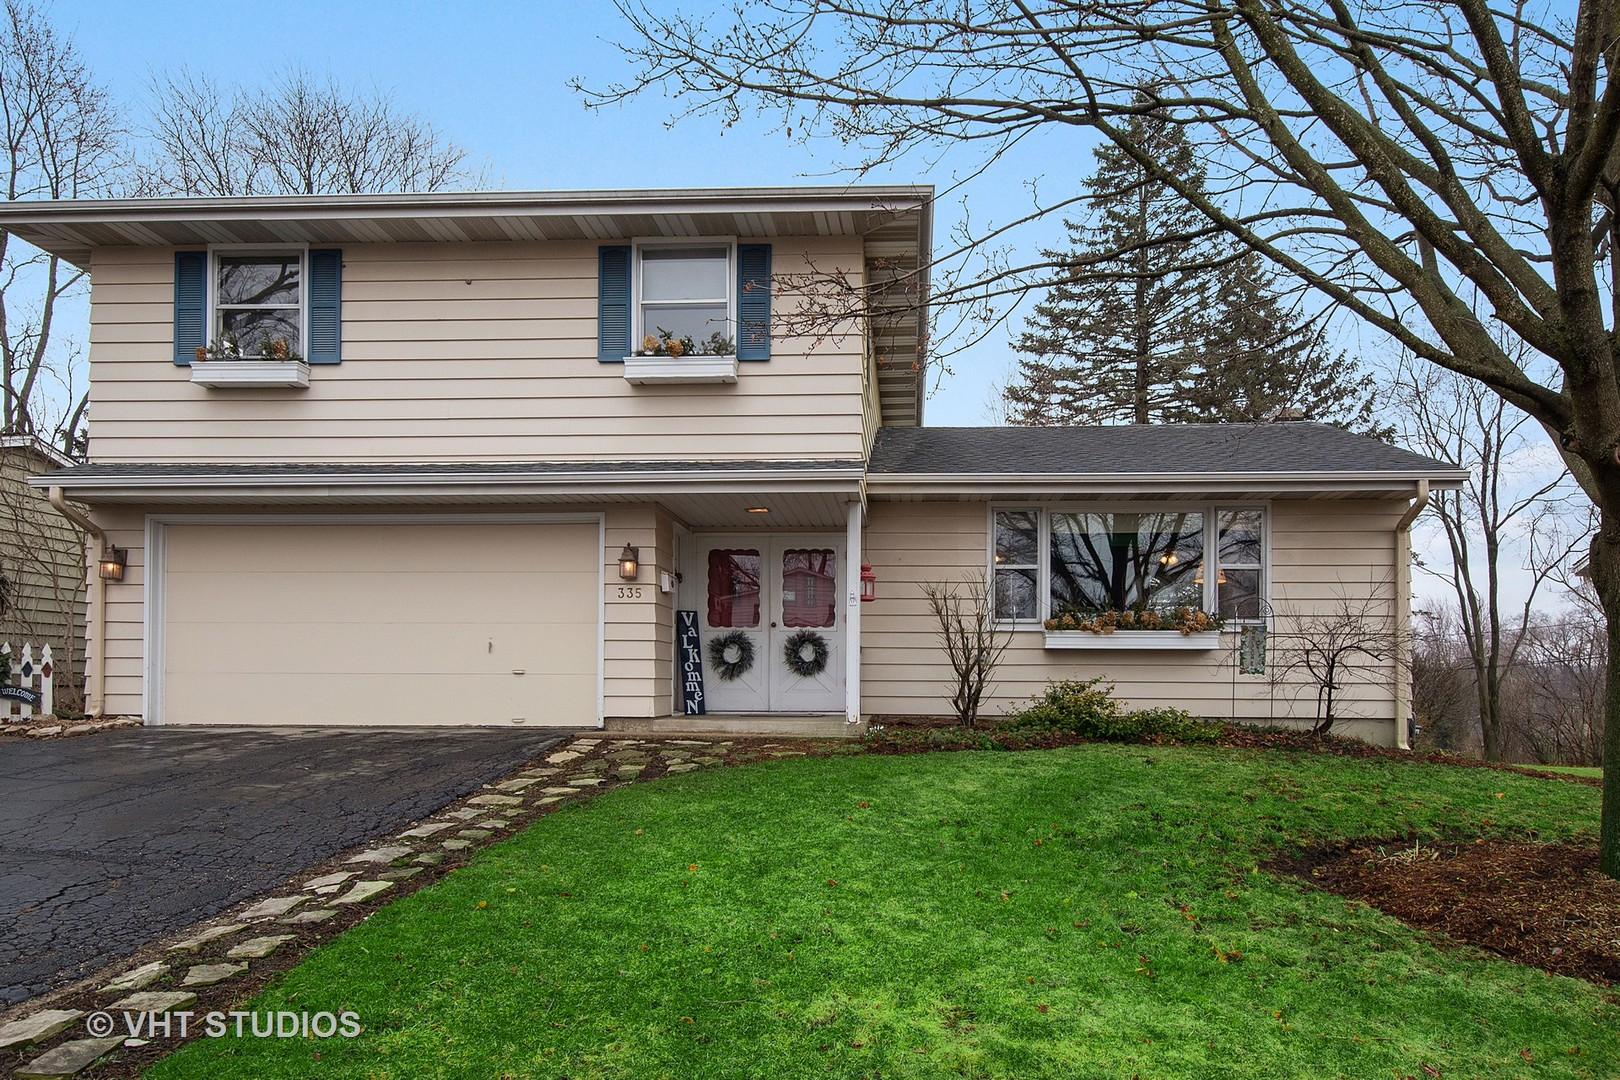 Photo for 335 W Margaret Terrace, Cary, IL 60013 (MLS # 10671128)